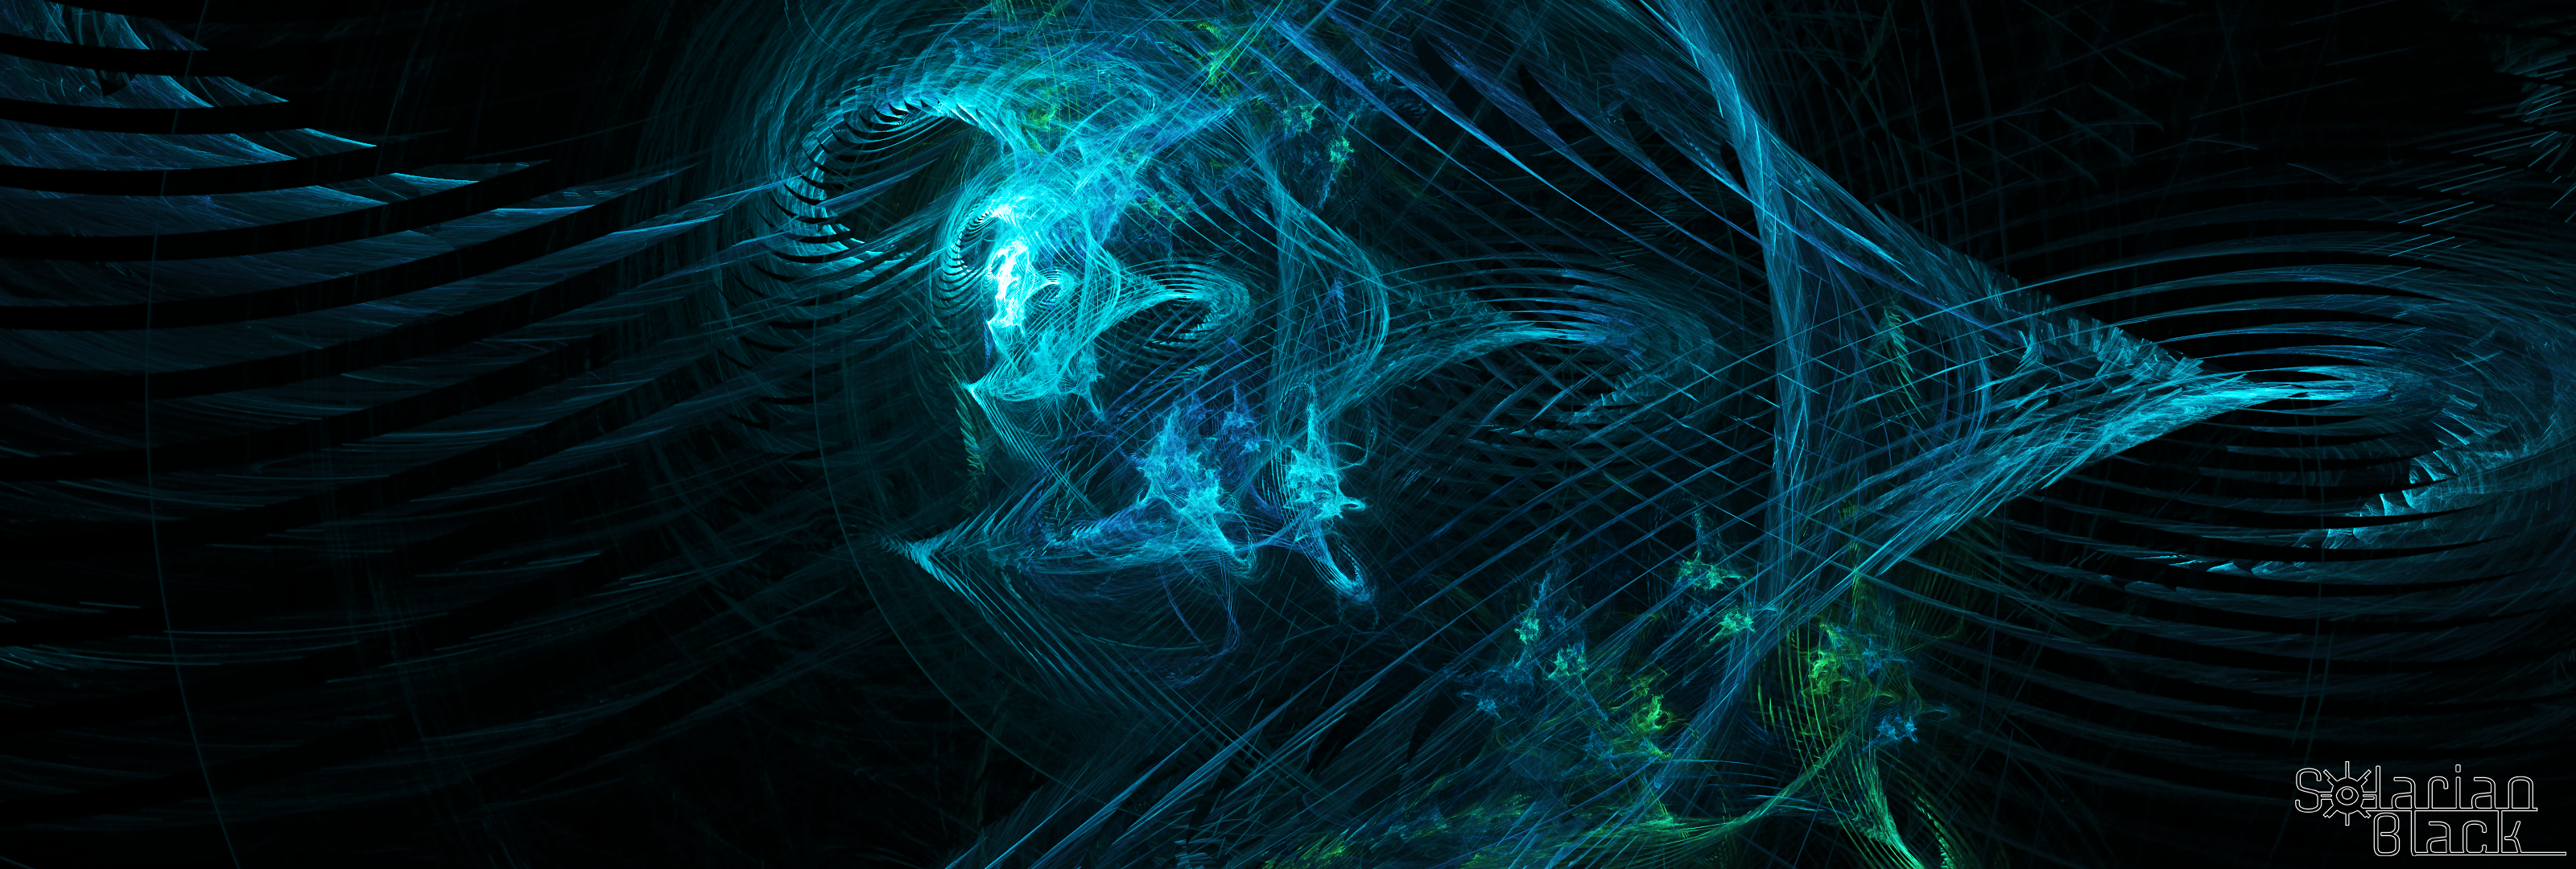 solarian black - digital fire multi-monitor [3200x1080] via classy